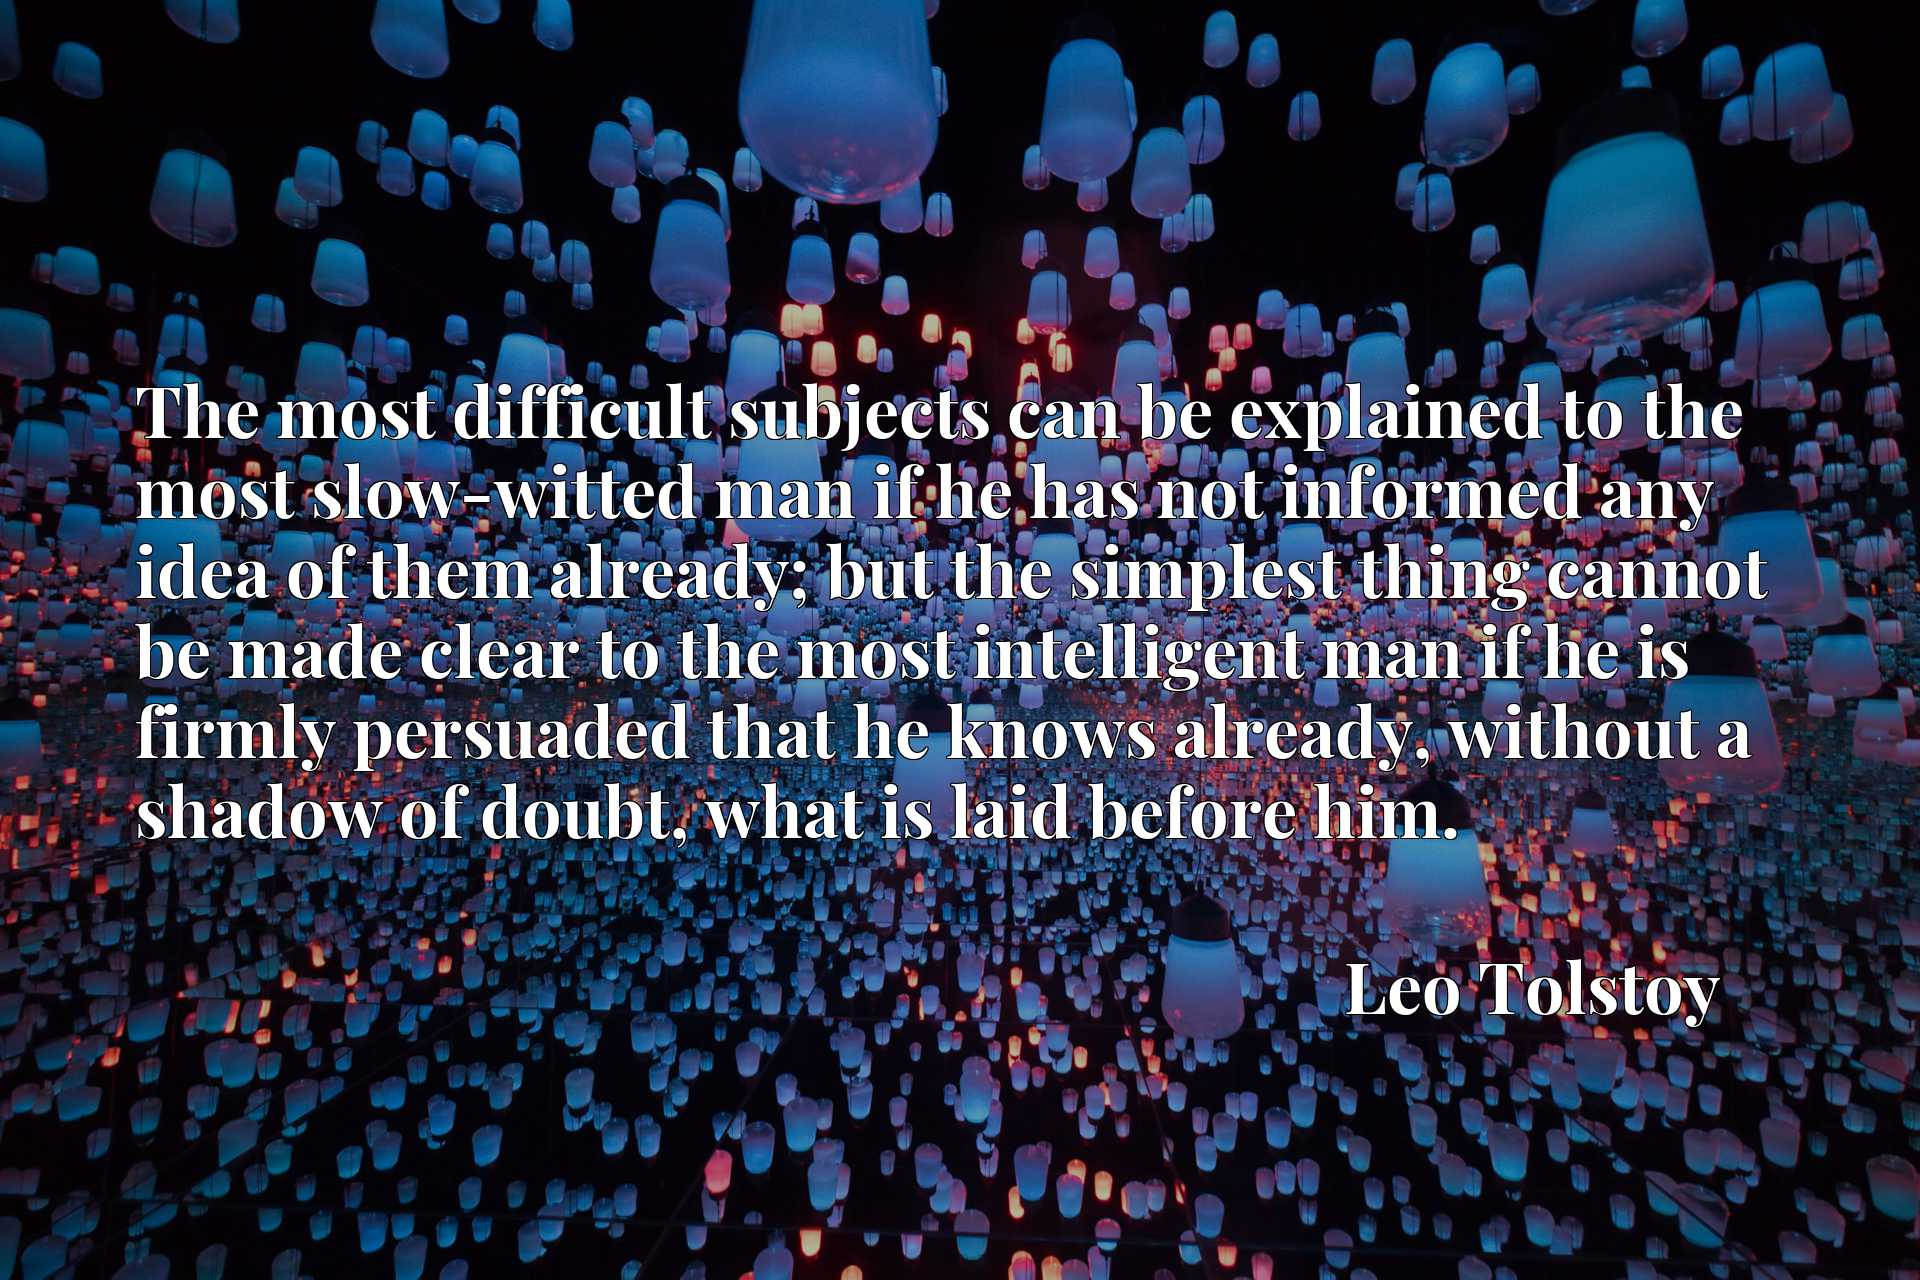 The most difficult subjects can be explained to the most slow-witted man if he has not informed any idea of them already; but the simplest thing cannot be made clear to the most intelligent man if he is firmly persuaded that he knows already, without a shadow of doubt, what is laid before him.